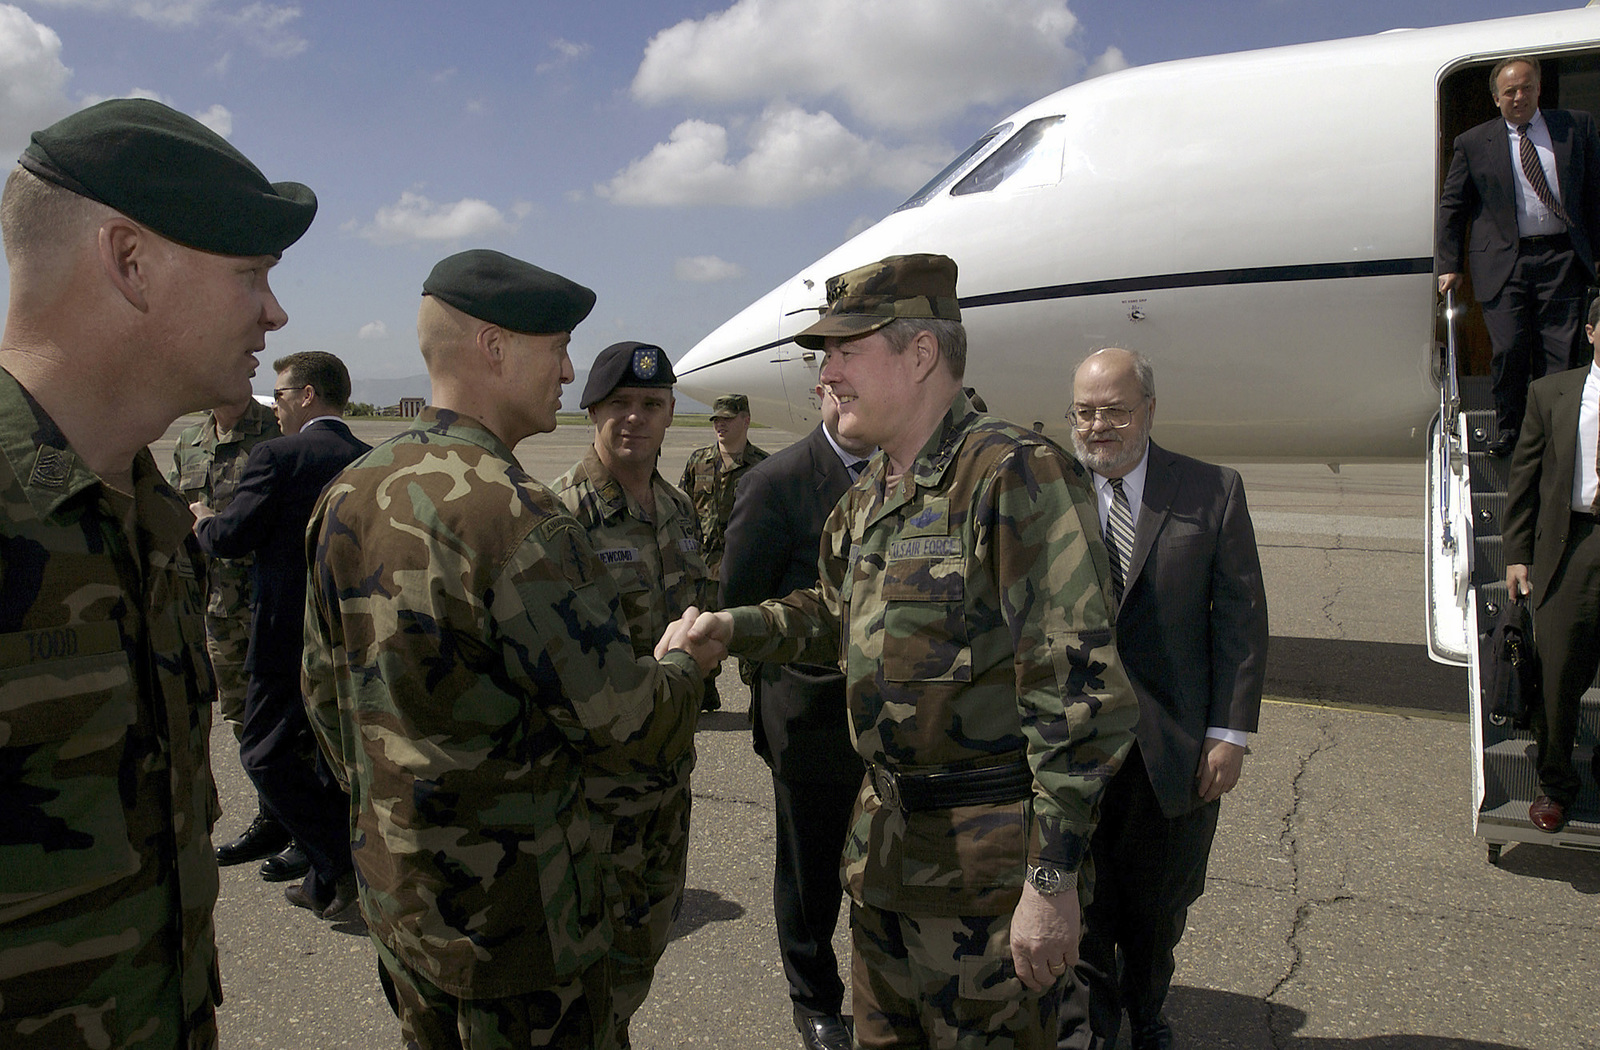 US Air Force (USAF) General Joseph W. Ralston (right), Commander in CHIEF, Unites States European Command (USEUCOM) and Supreme Allied Commander of Europe, National Atlantic Treaty Organization (NATO), is greeted by US Army Lieutenant Colonel Robert Waltemeyer, Commander of Georgia Train and Equip Program (GTEP), upon his arrival in Tbilisi, Georgia